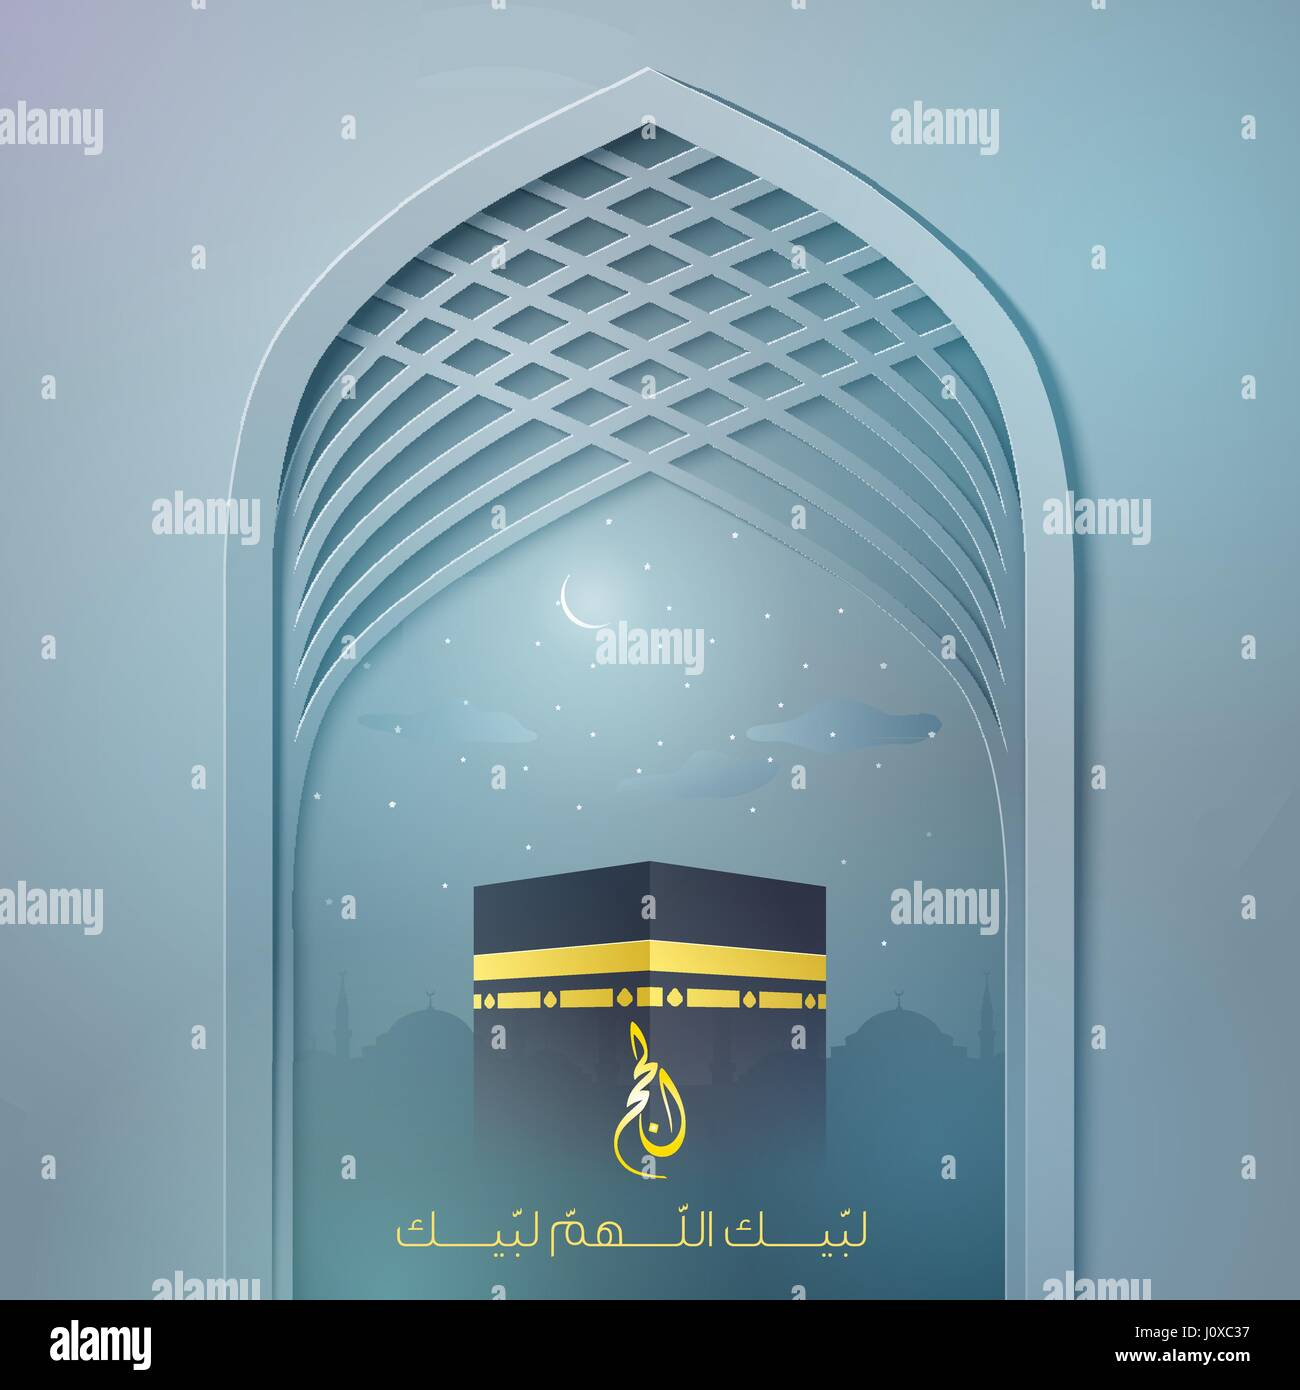 Umrah Banner: Mosque Door And Kaaba Illustration For Islamic Hajj